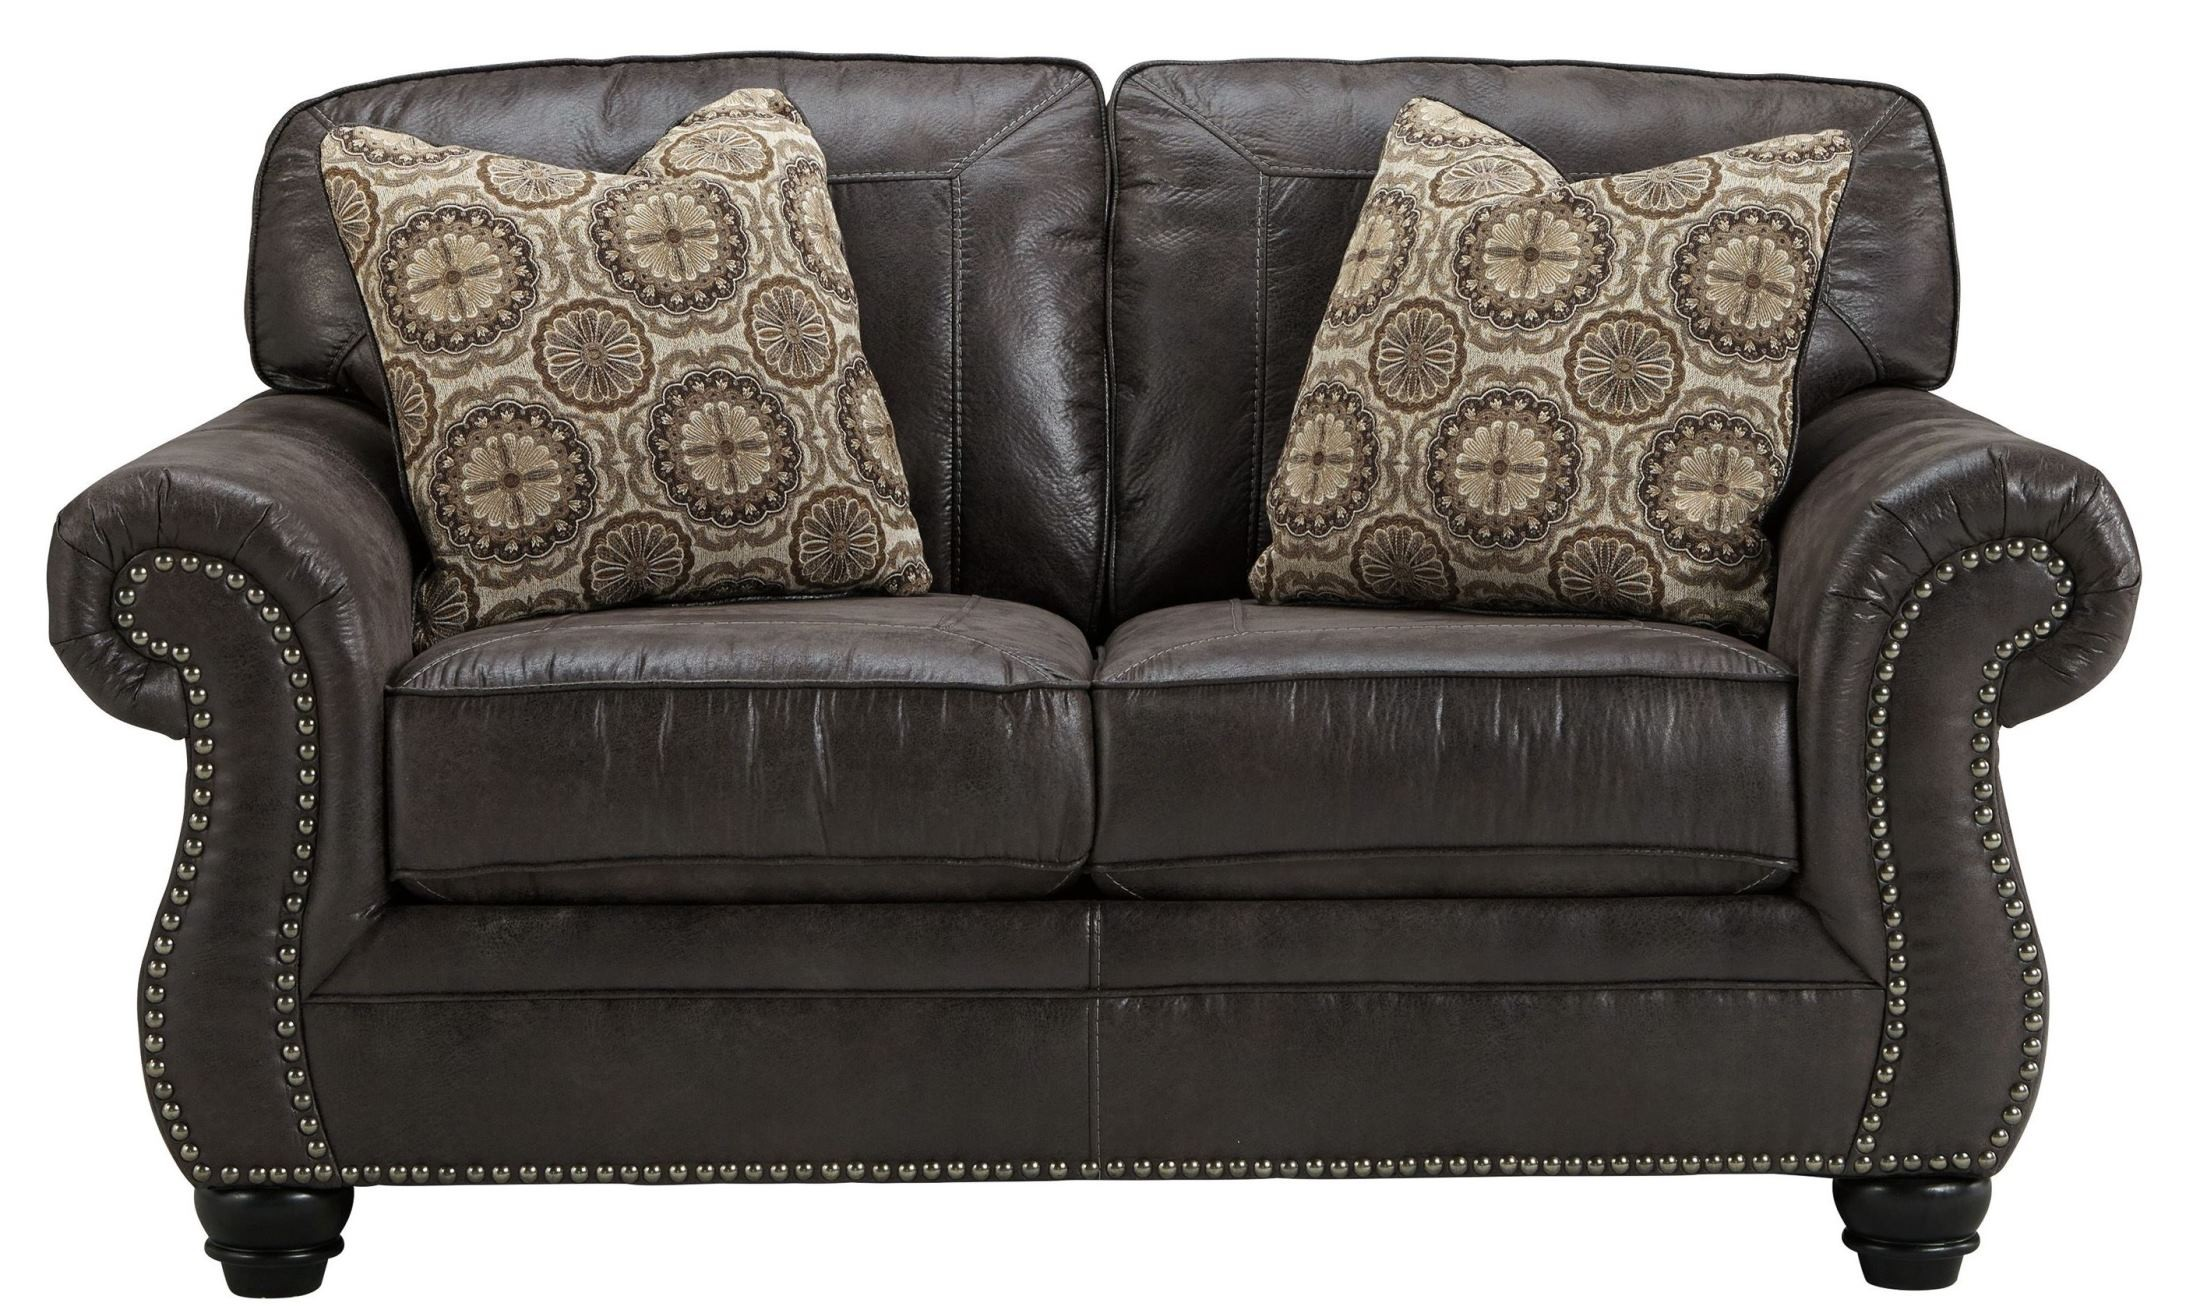 Breville Charcoal Loveseat From Ashley 8000435 Coleman Furniture